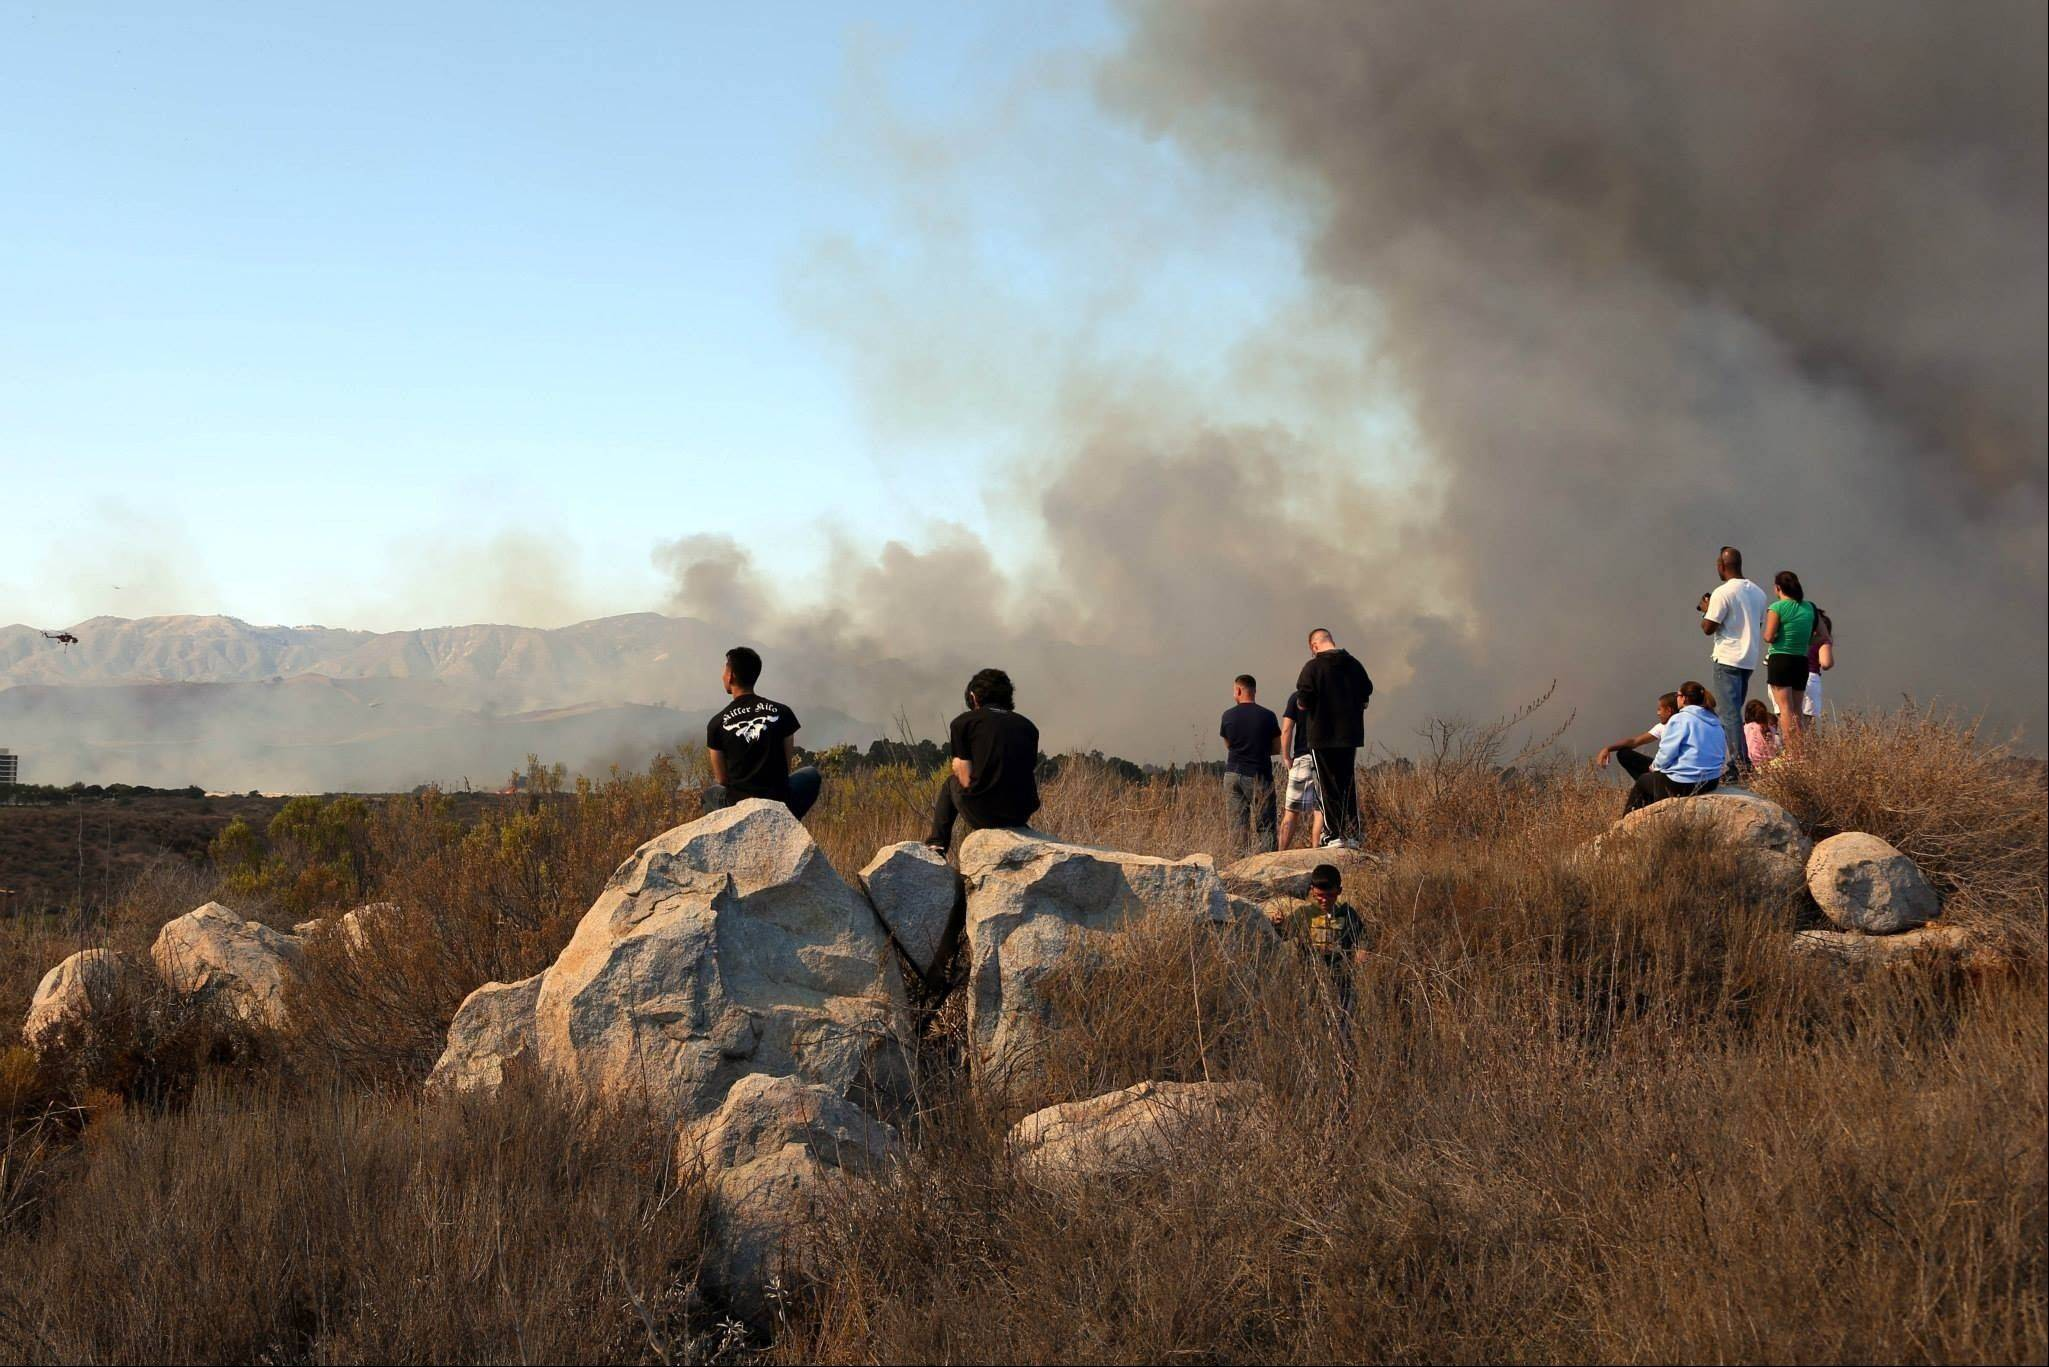 A fire burns in the Lake O�Neill vicinity of Camp Pendleton, Calif. This brush fire at Camp Pendleton has burned more than 1,500 acres and forced evacuation of a military housing area and the base hospital.